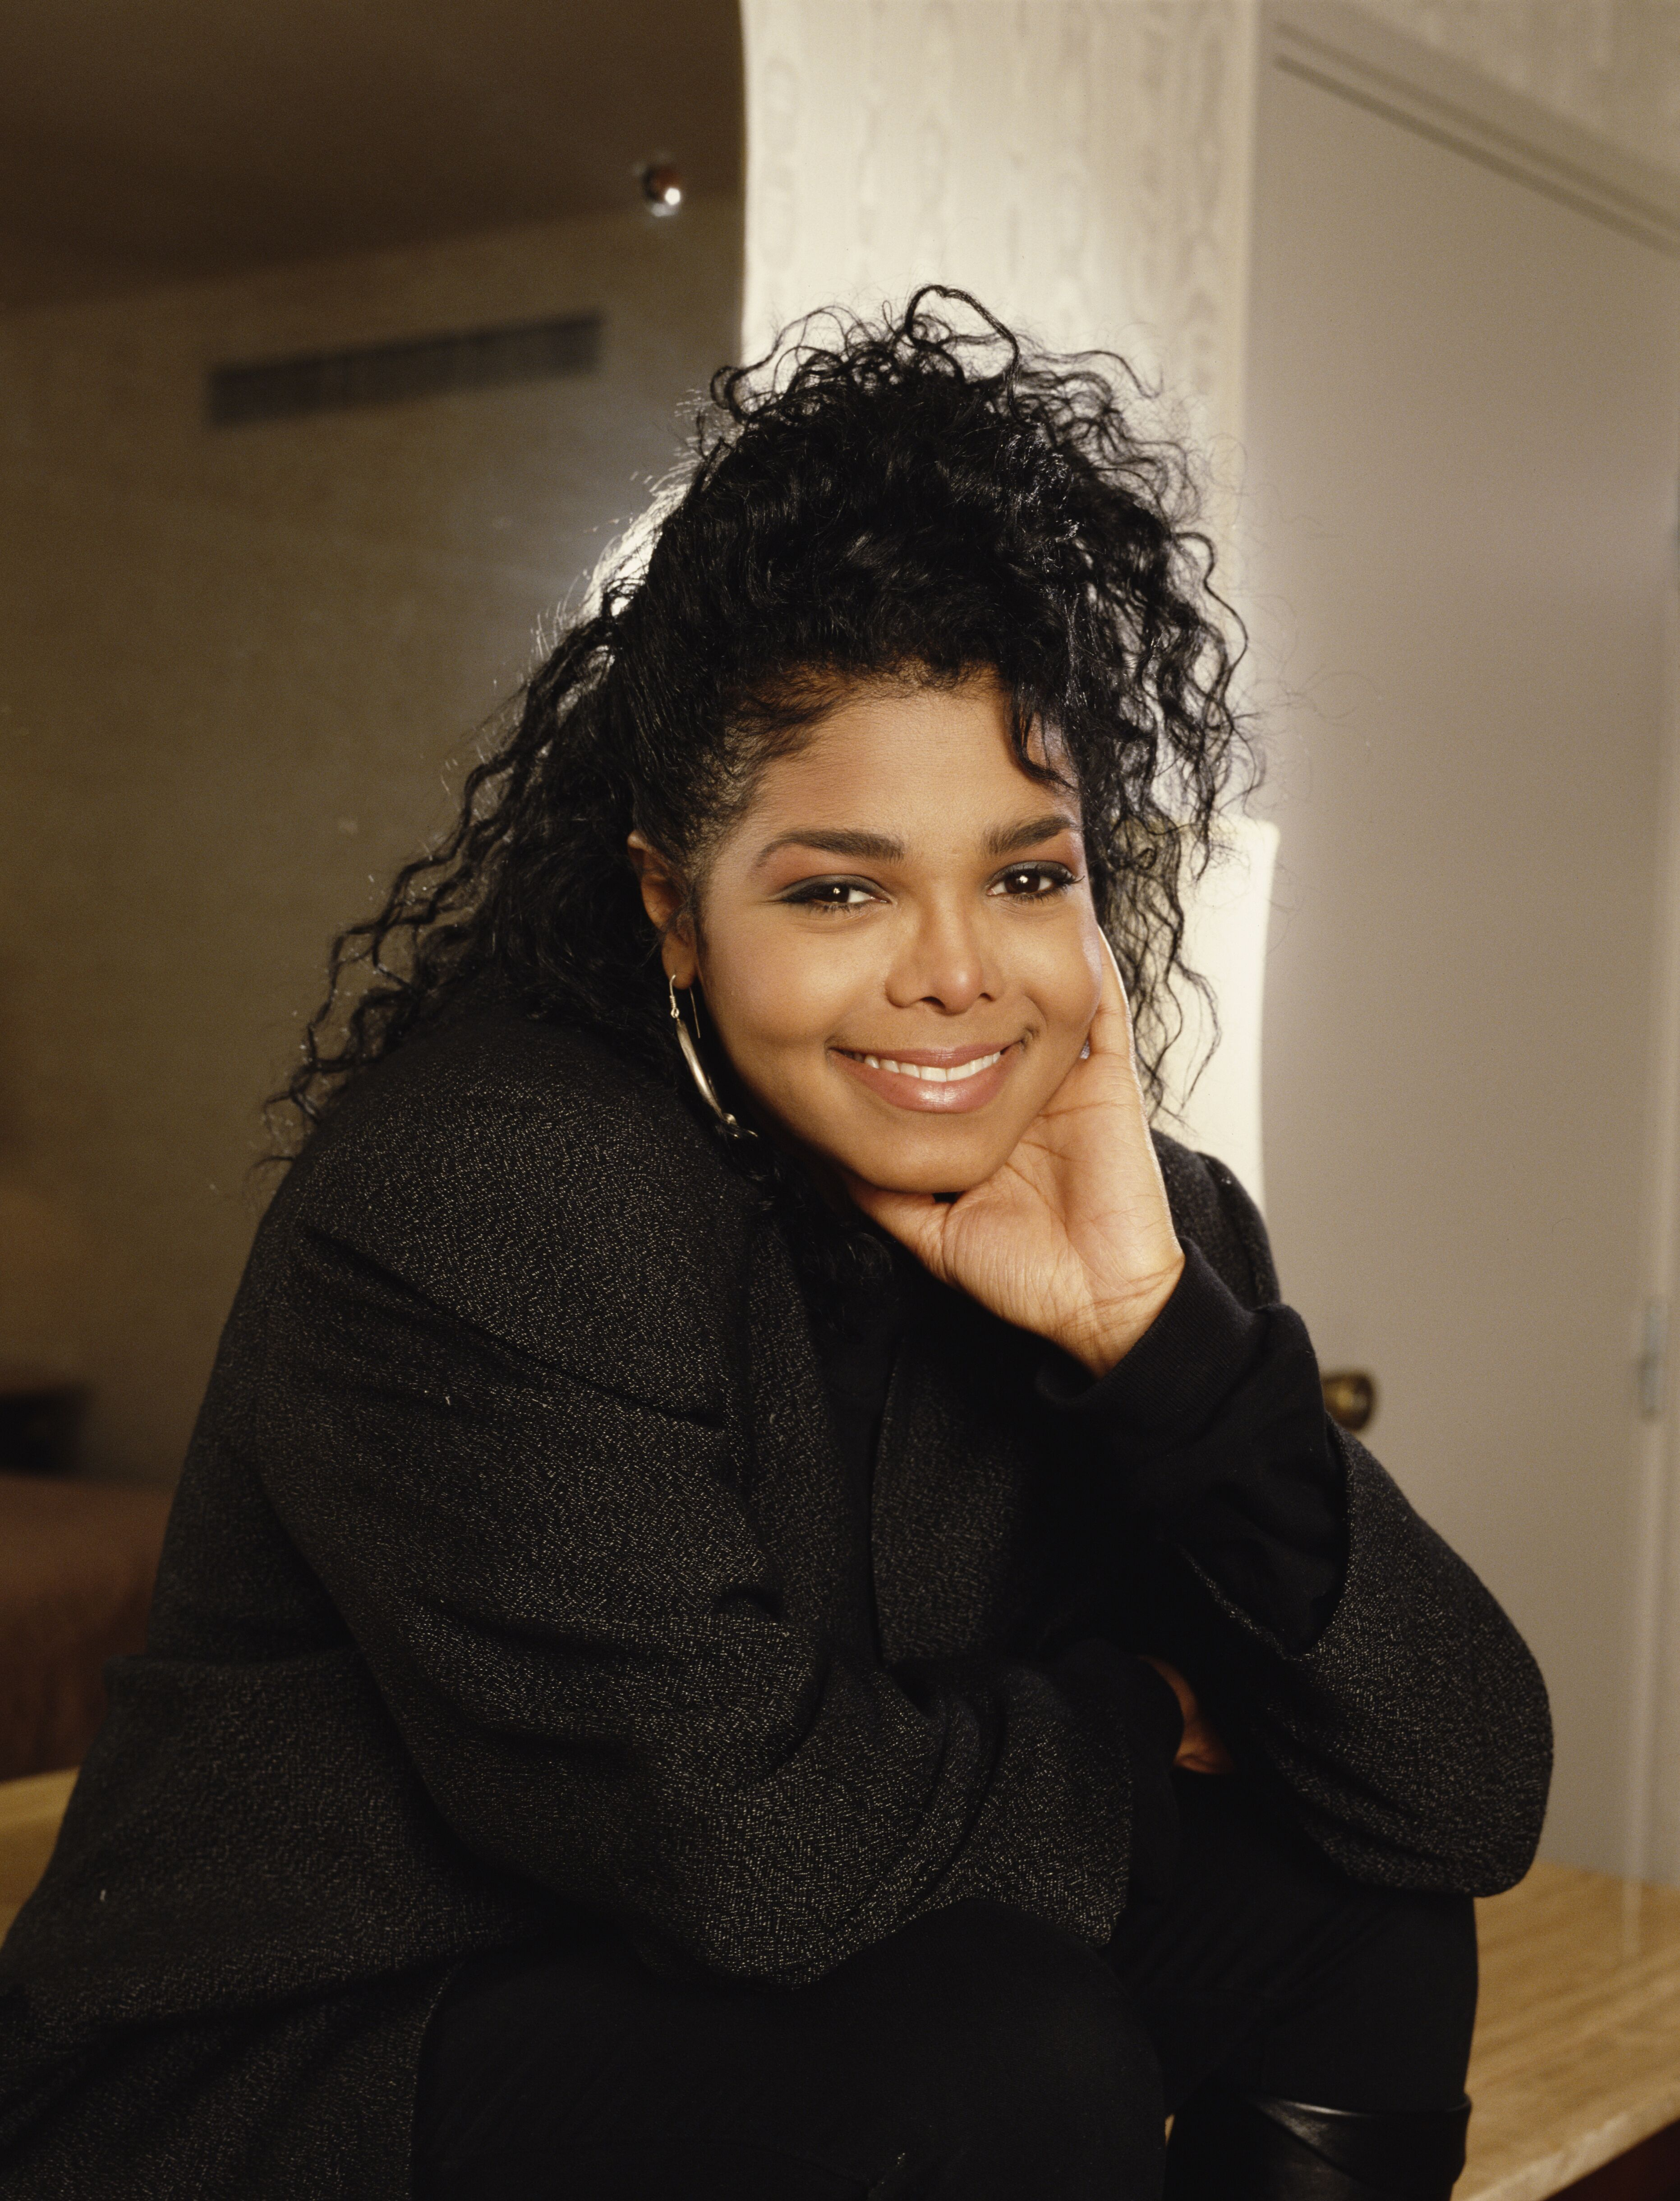 American singer Janet Jackson, circa 1990. | Source: Getty Images